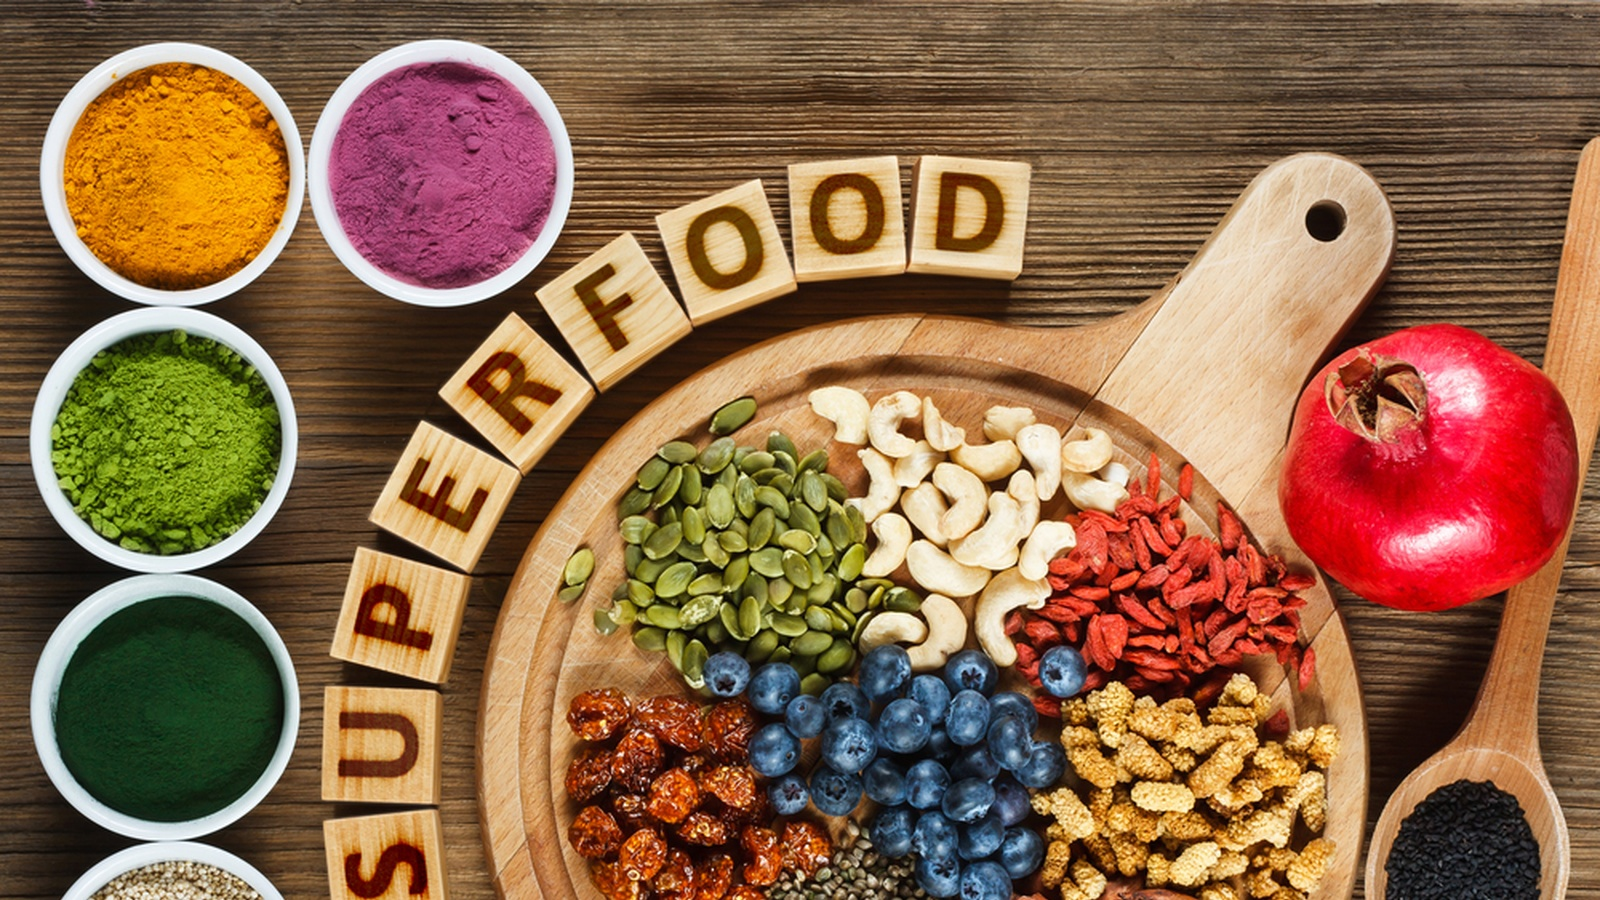 Busting Myths About Superfoods & 5 Superfoods Your Body Craves